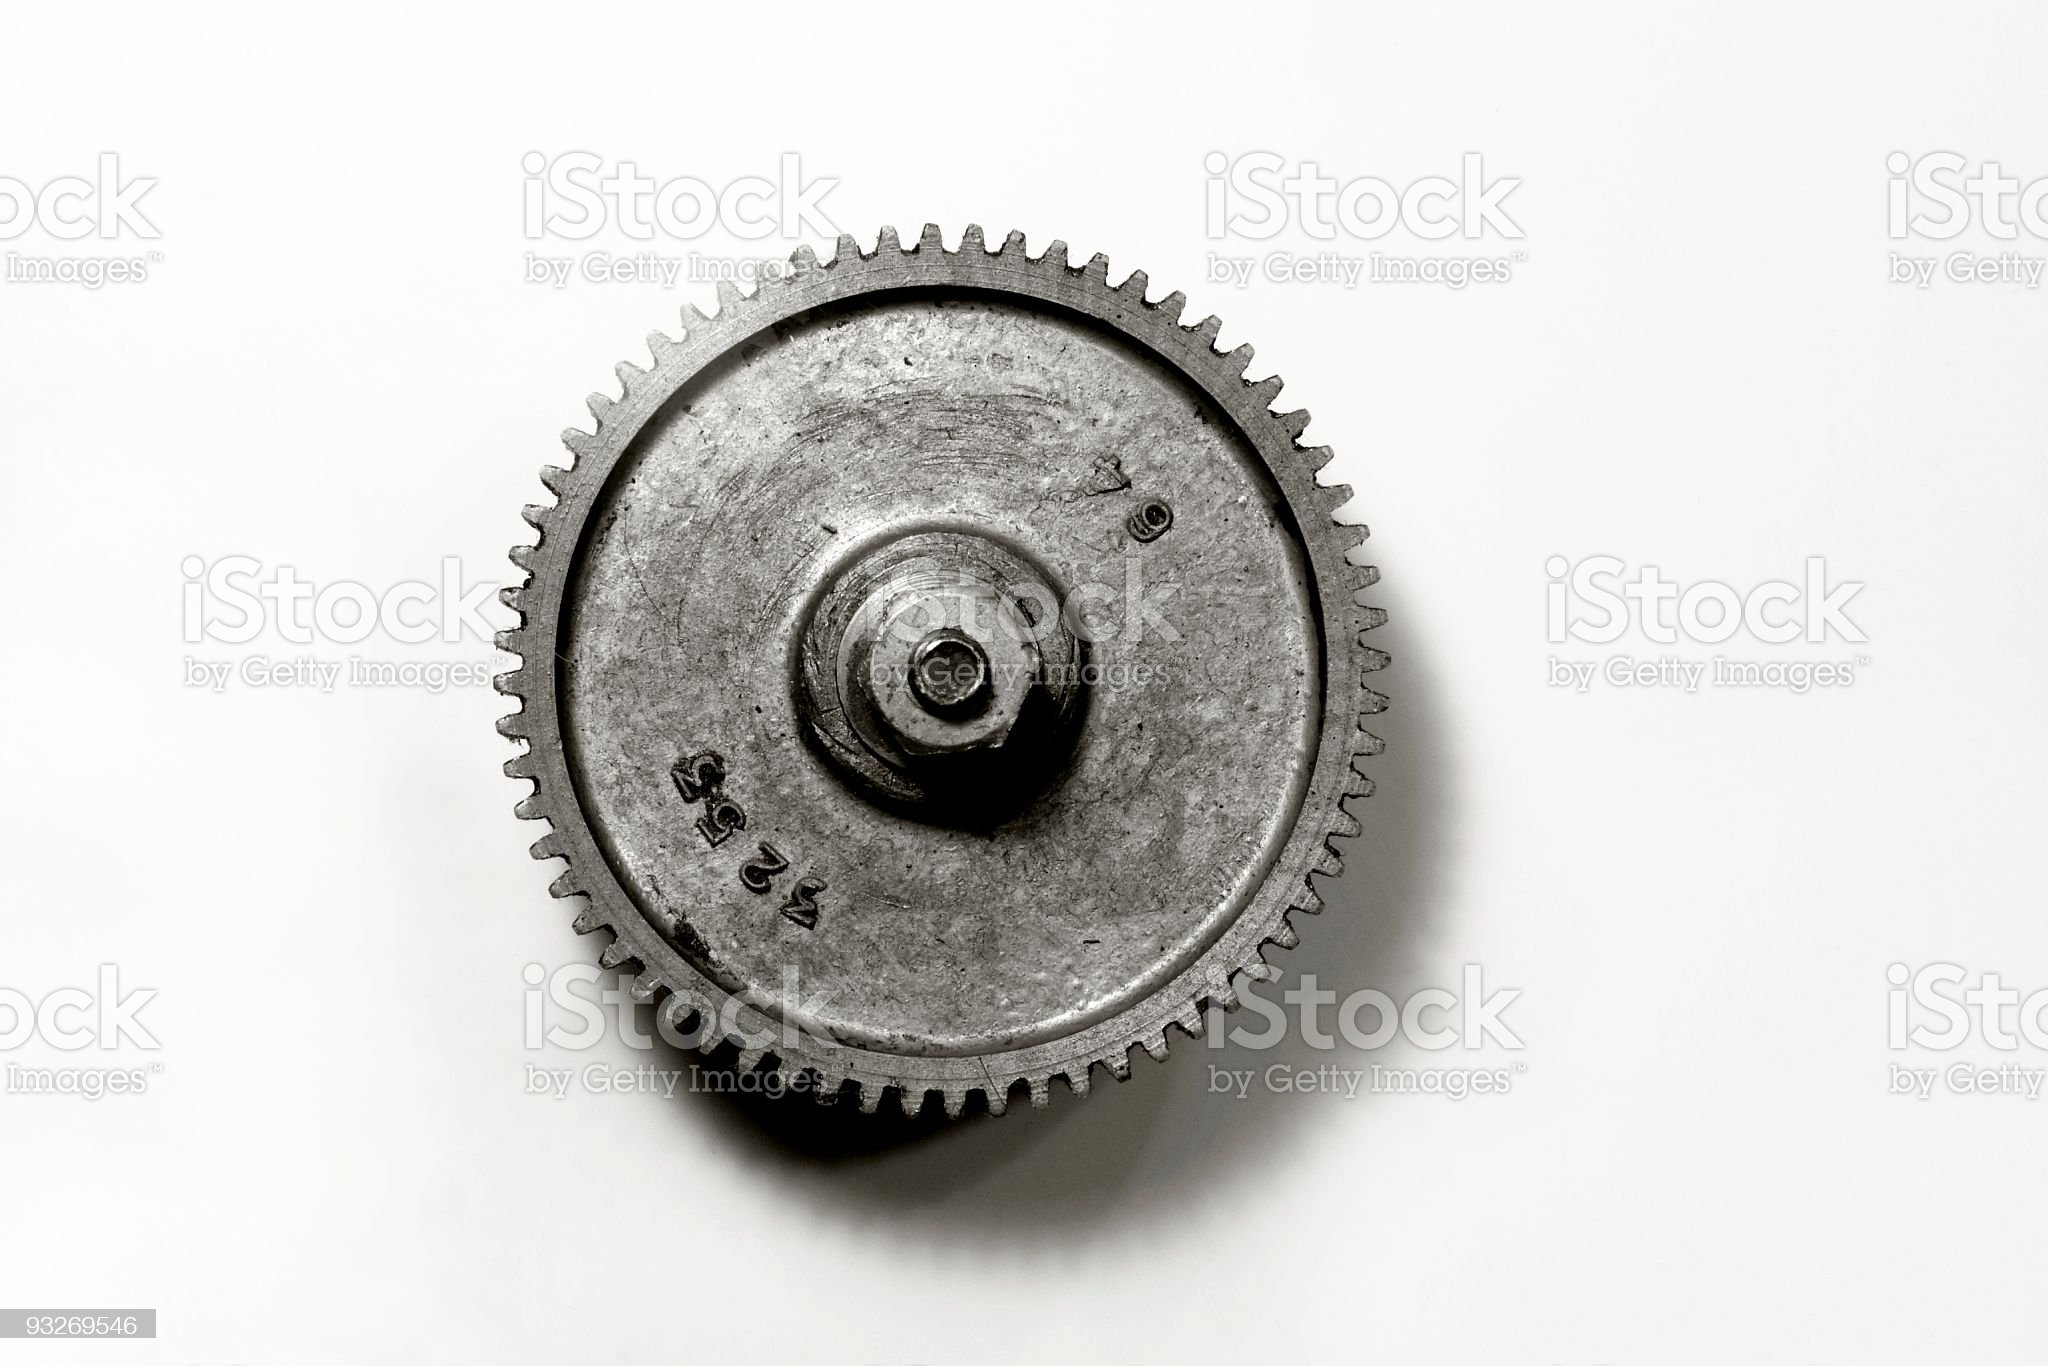 Black and White Gear royalty-free stock photo